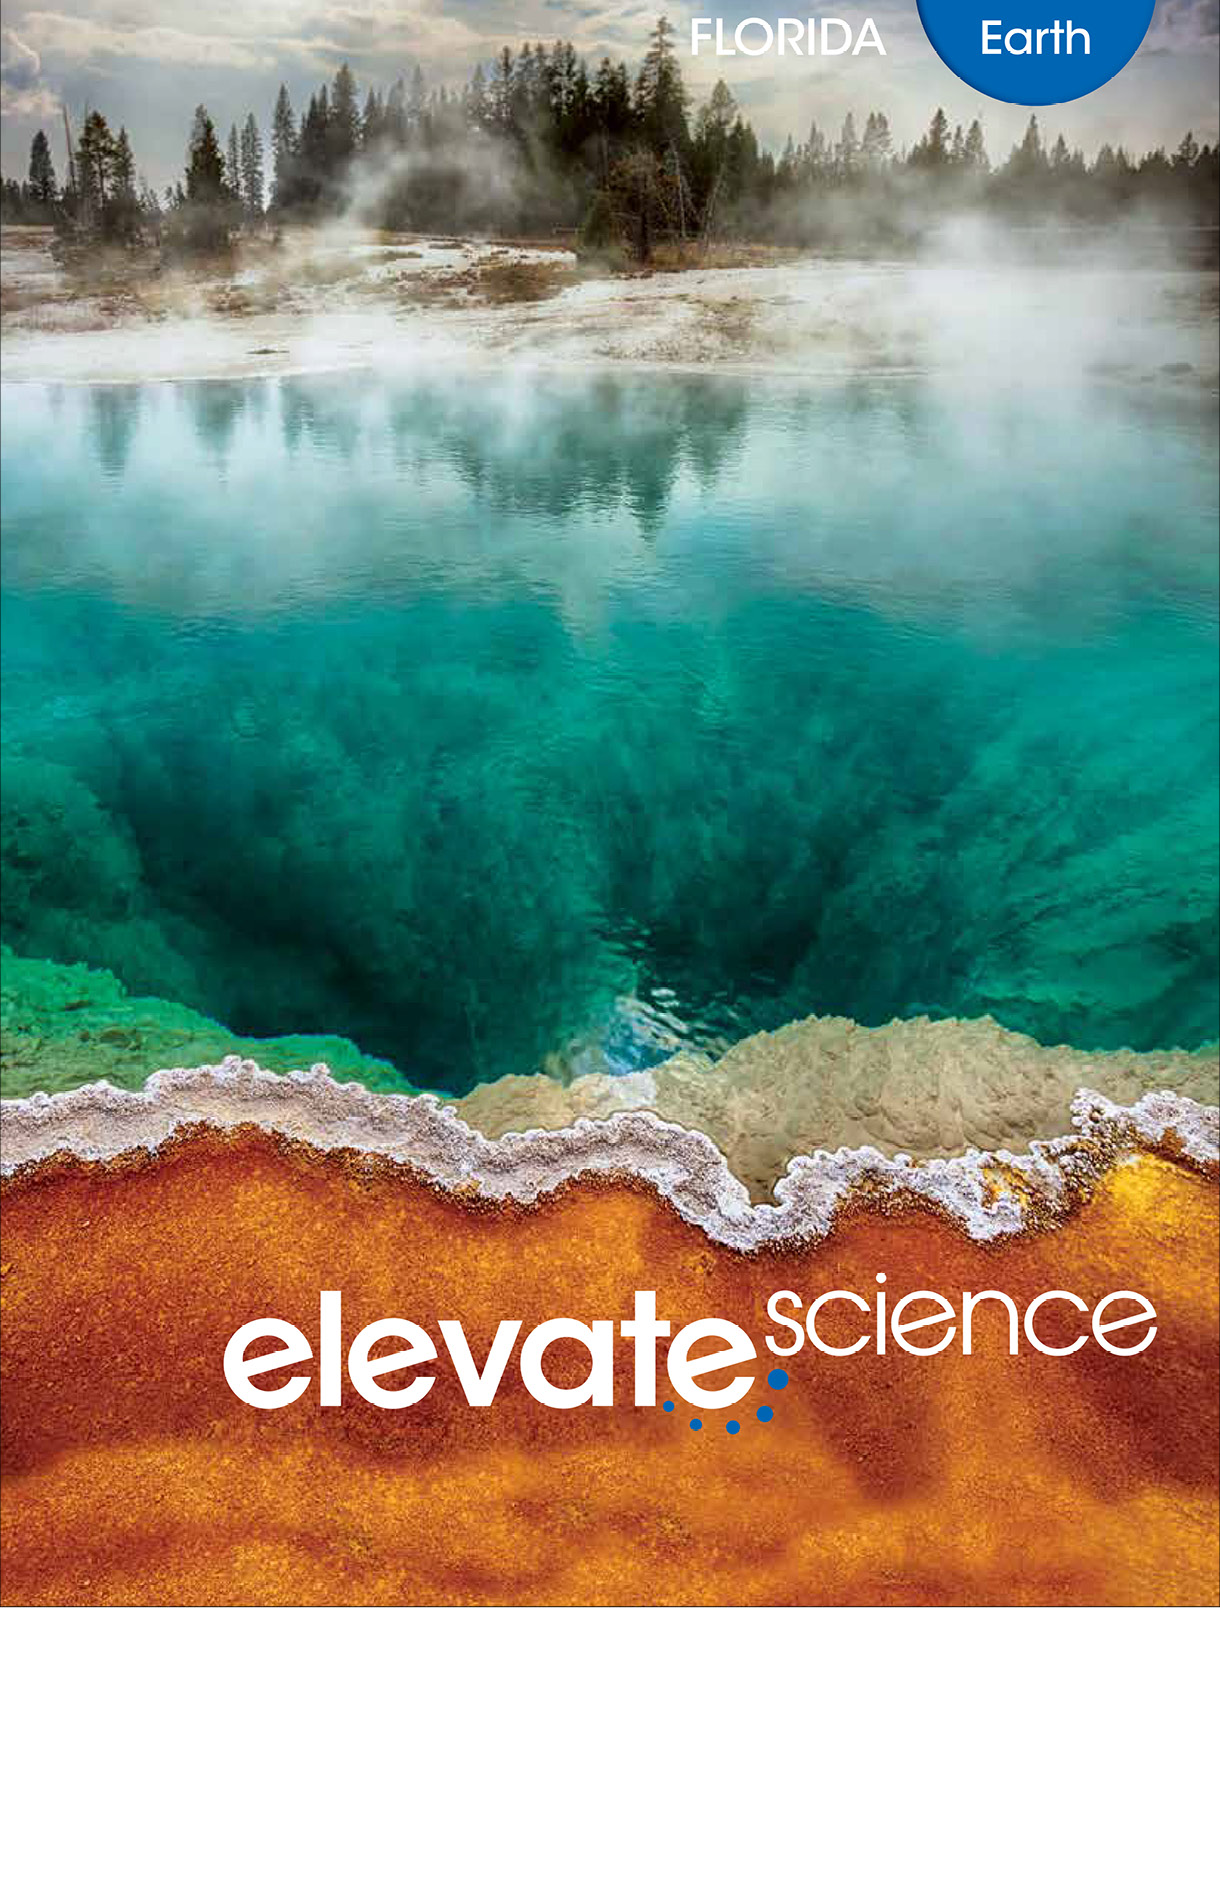 Book cover Elevate Science book. It has a body of water with fog coming out of it, surrounded by sand on one side and trees on another.